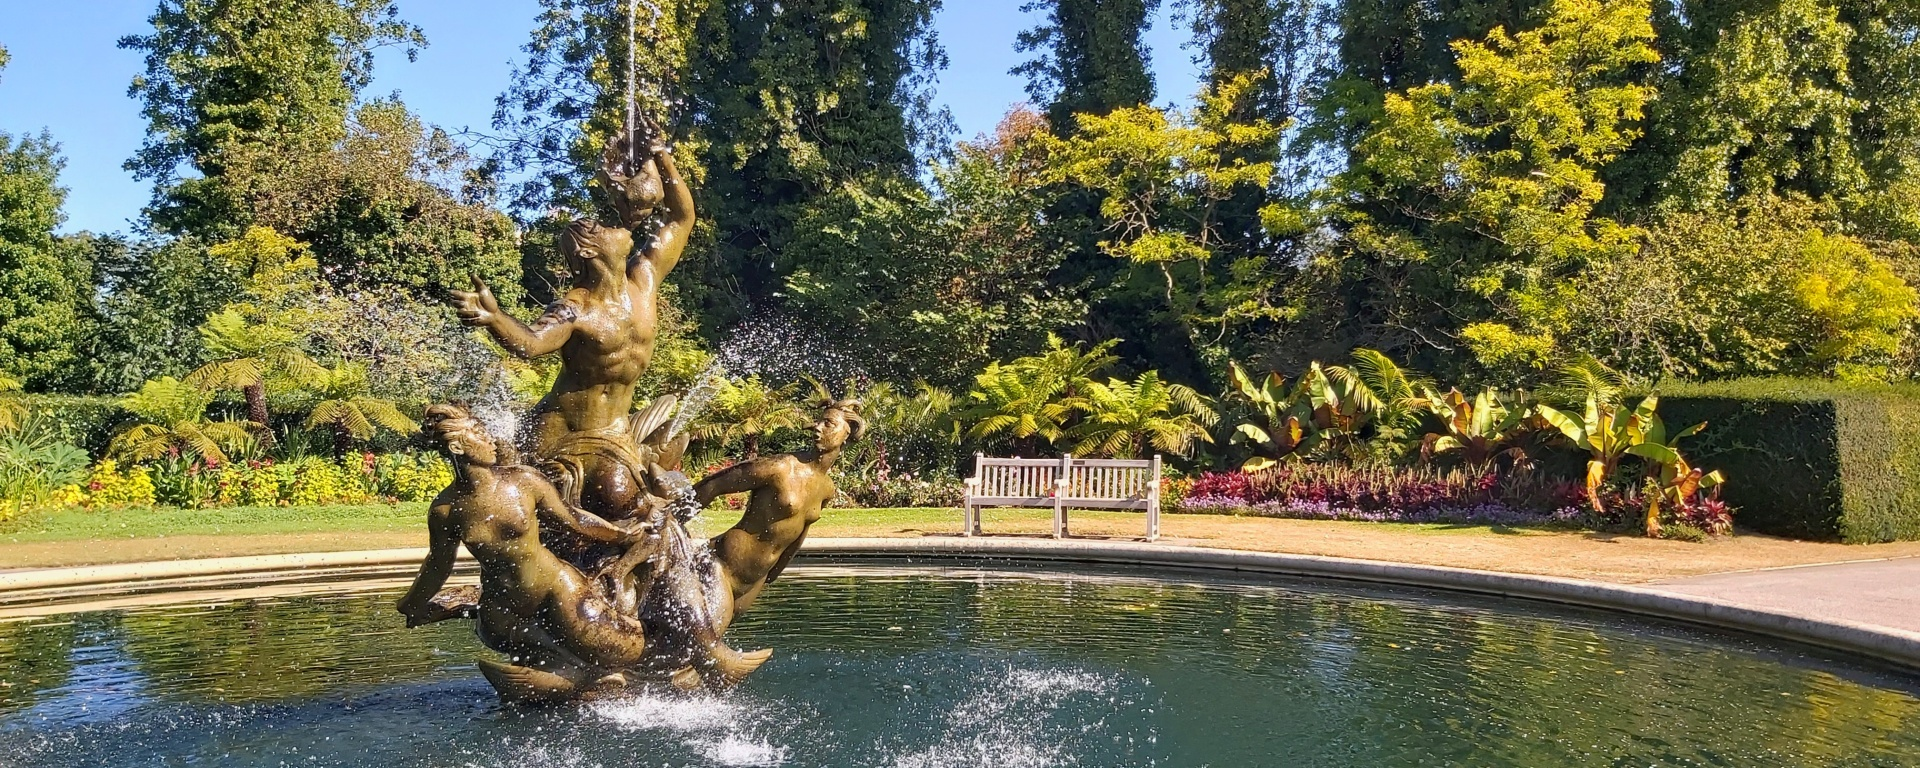 A big fountain in Regent's Park, London